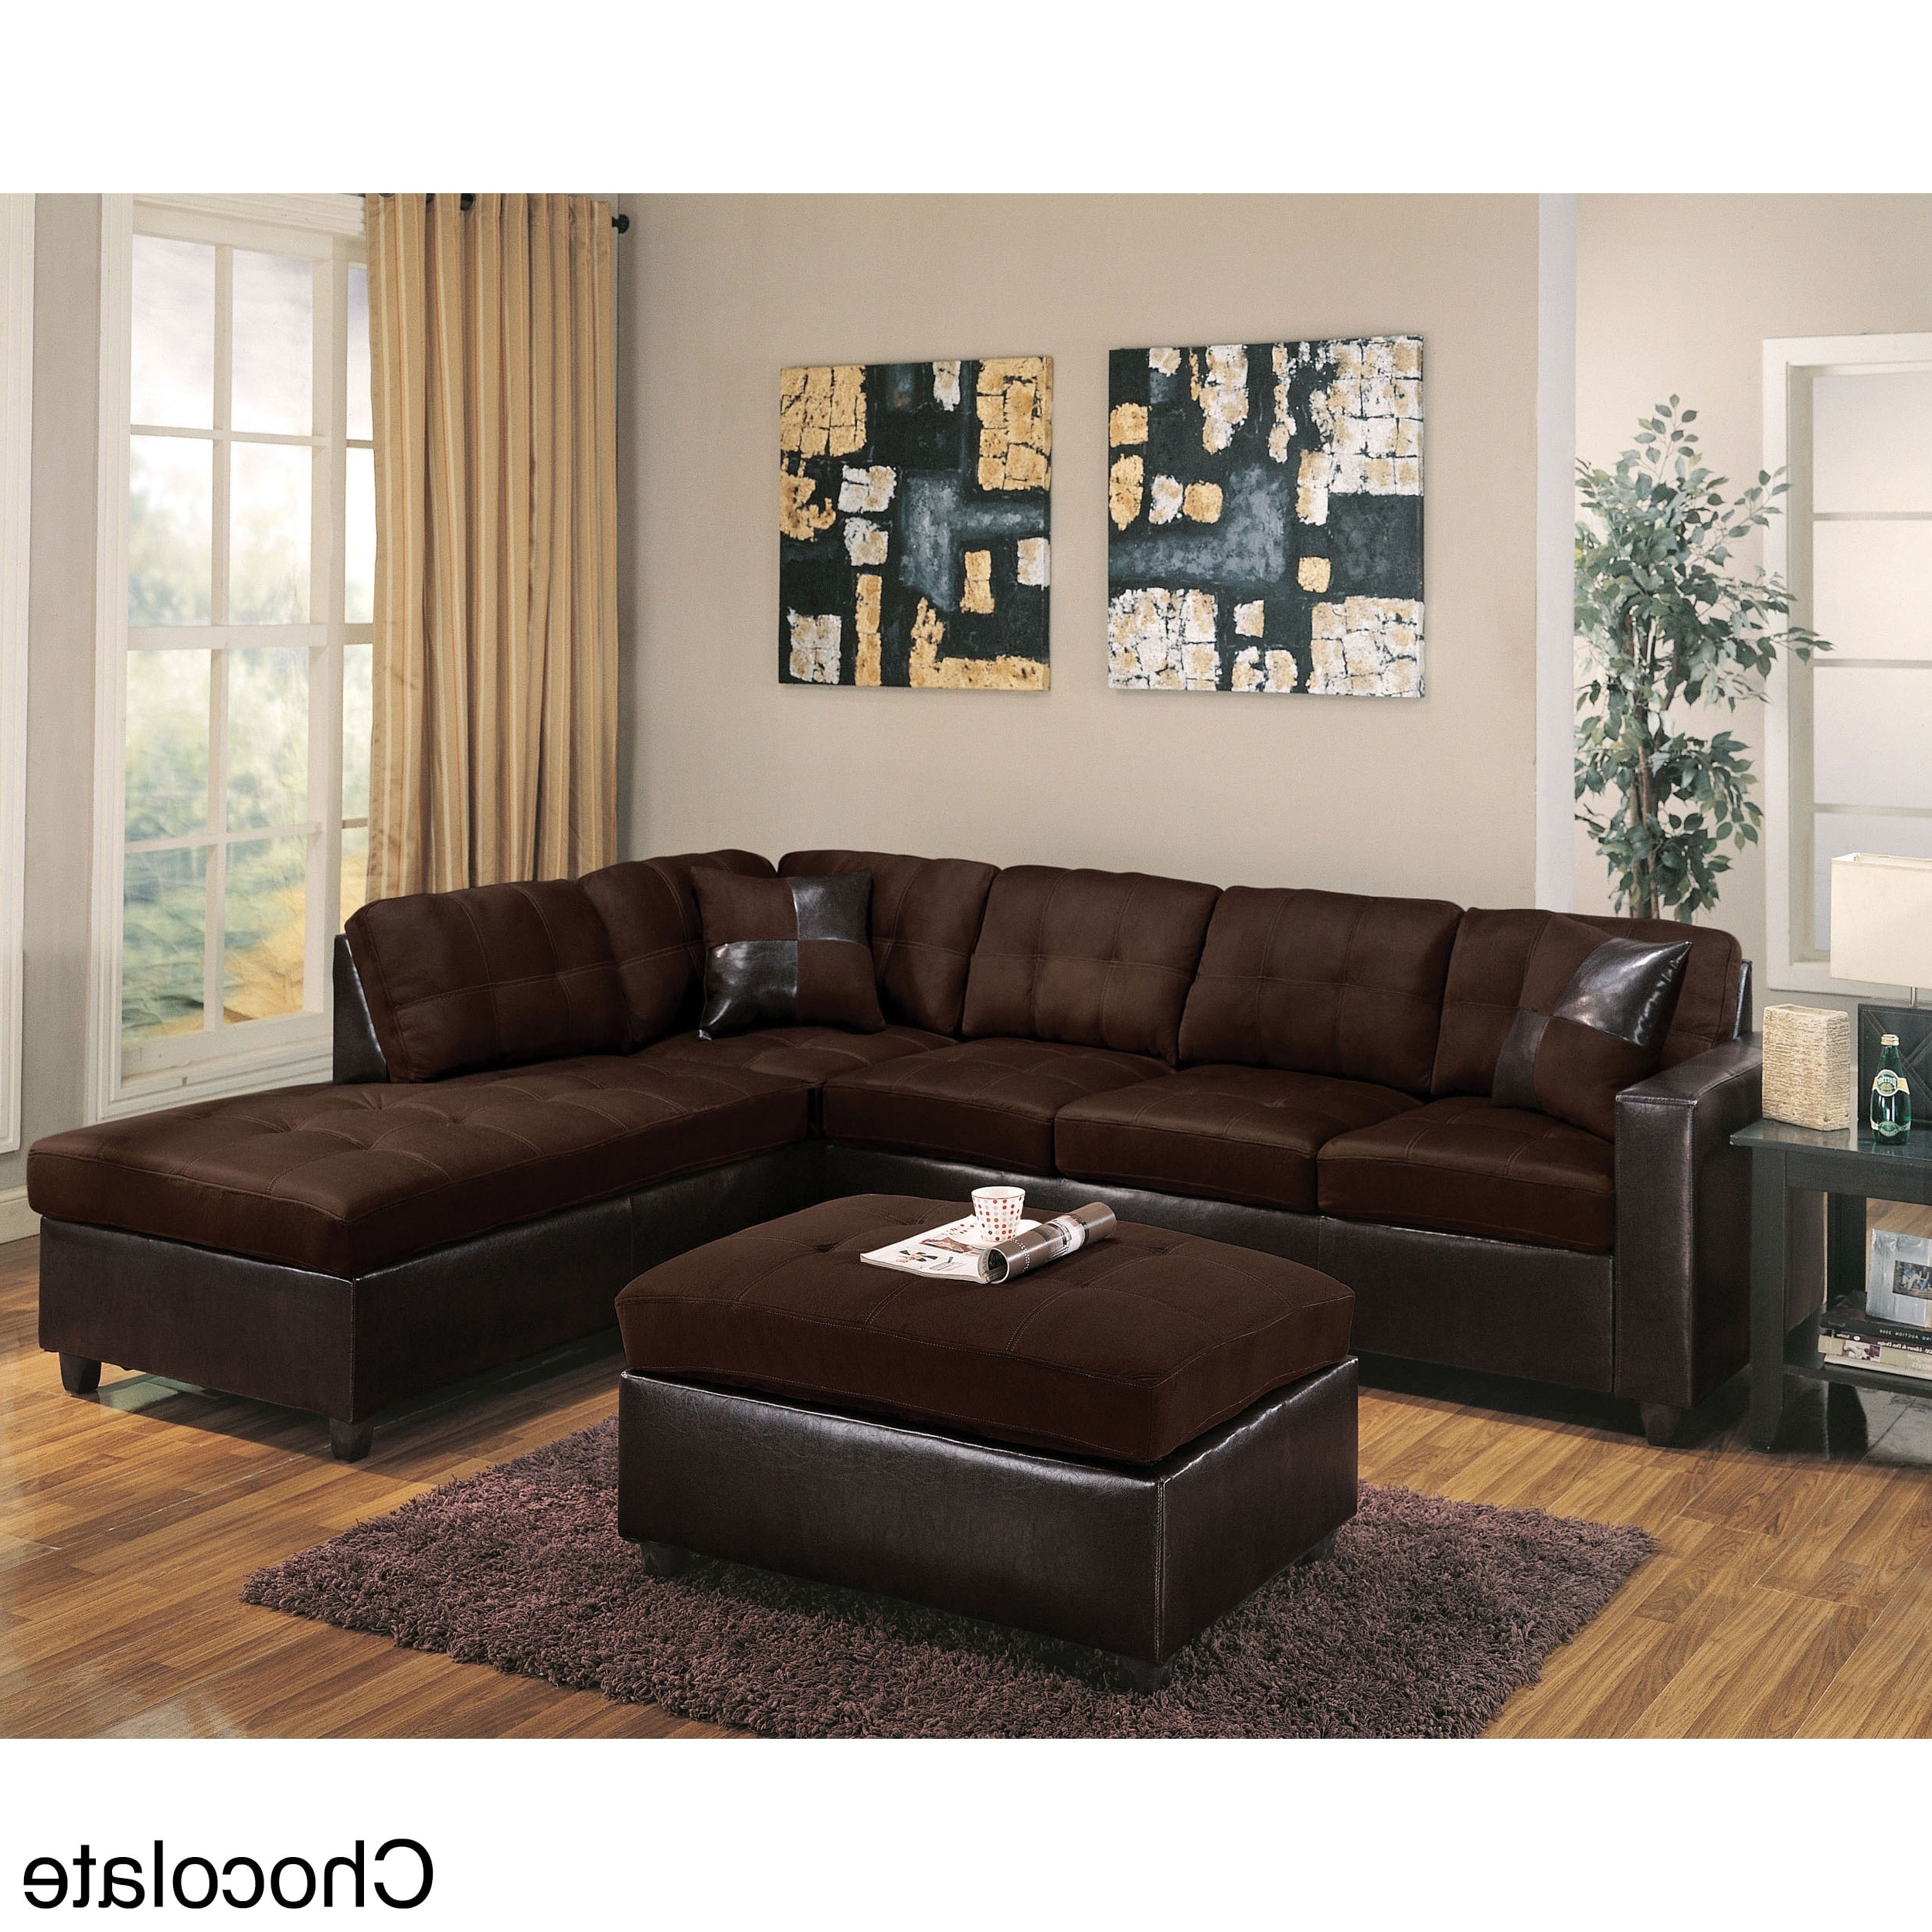 Famous Chocolate Sectional Sofas Within Milano Reversible Sectional Sofa In Chocolate Easy Rider And (View 5 of 15)